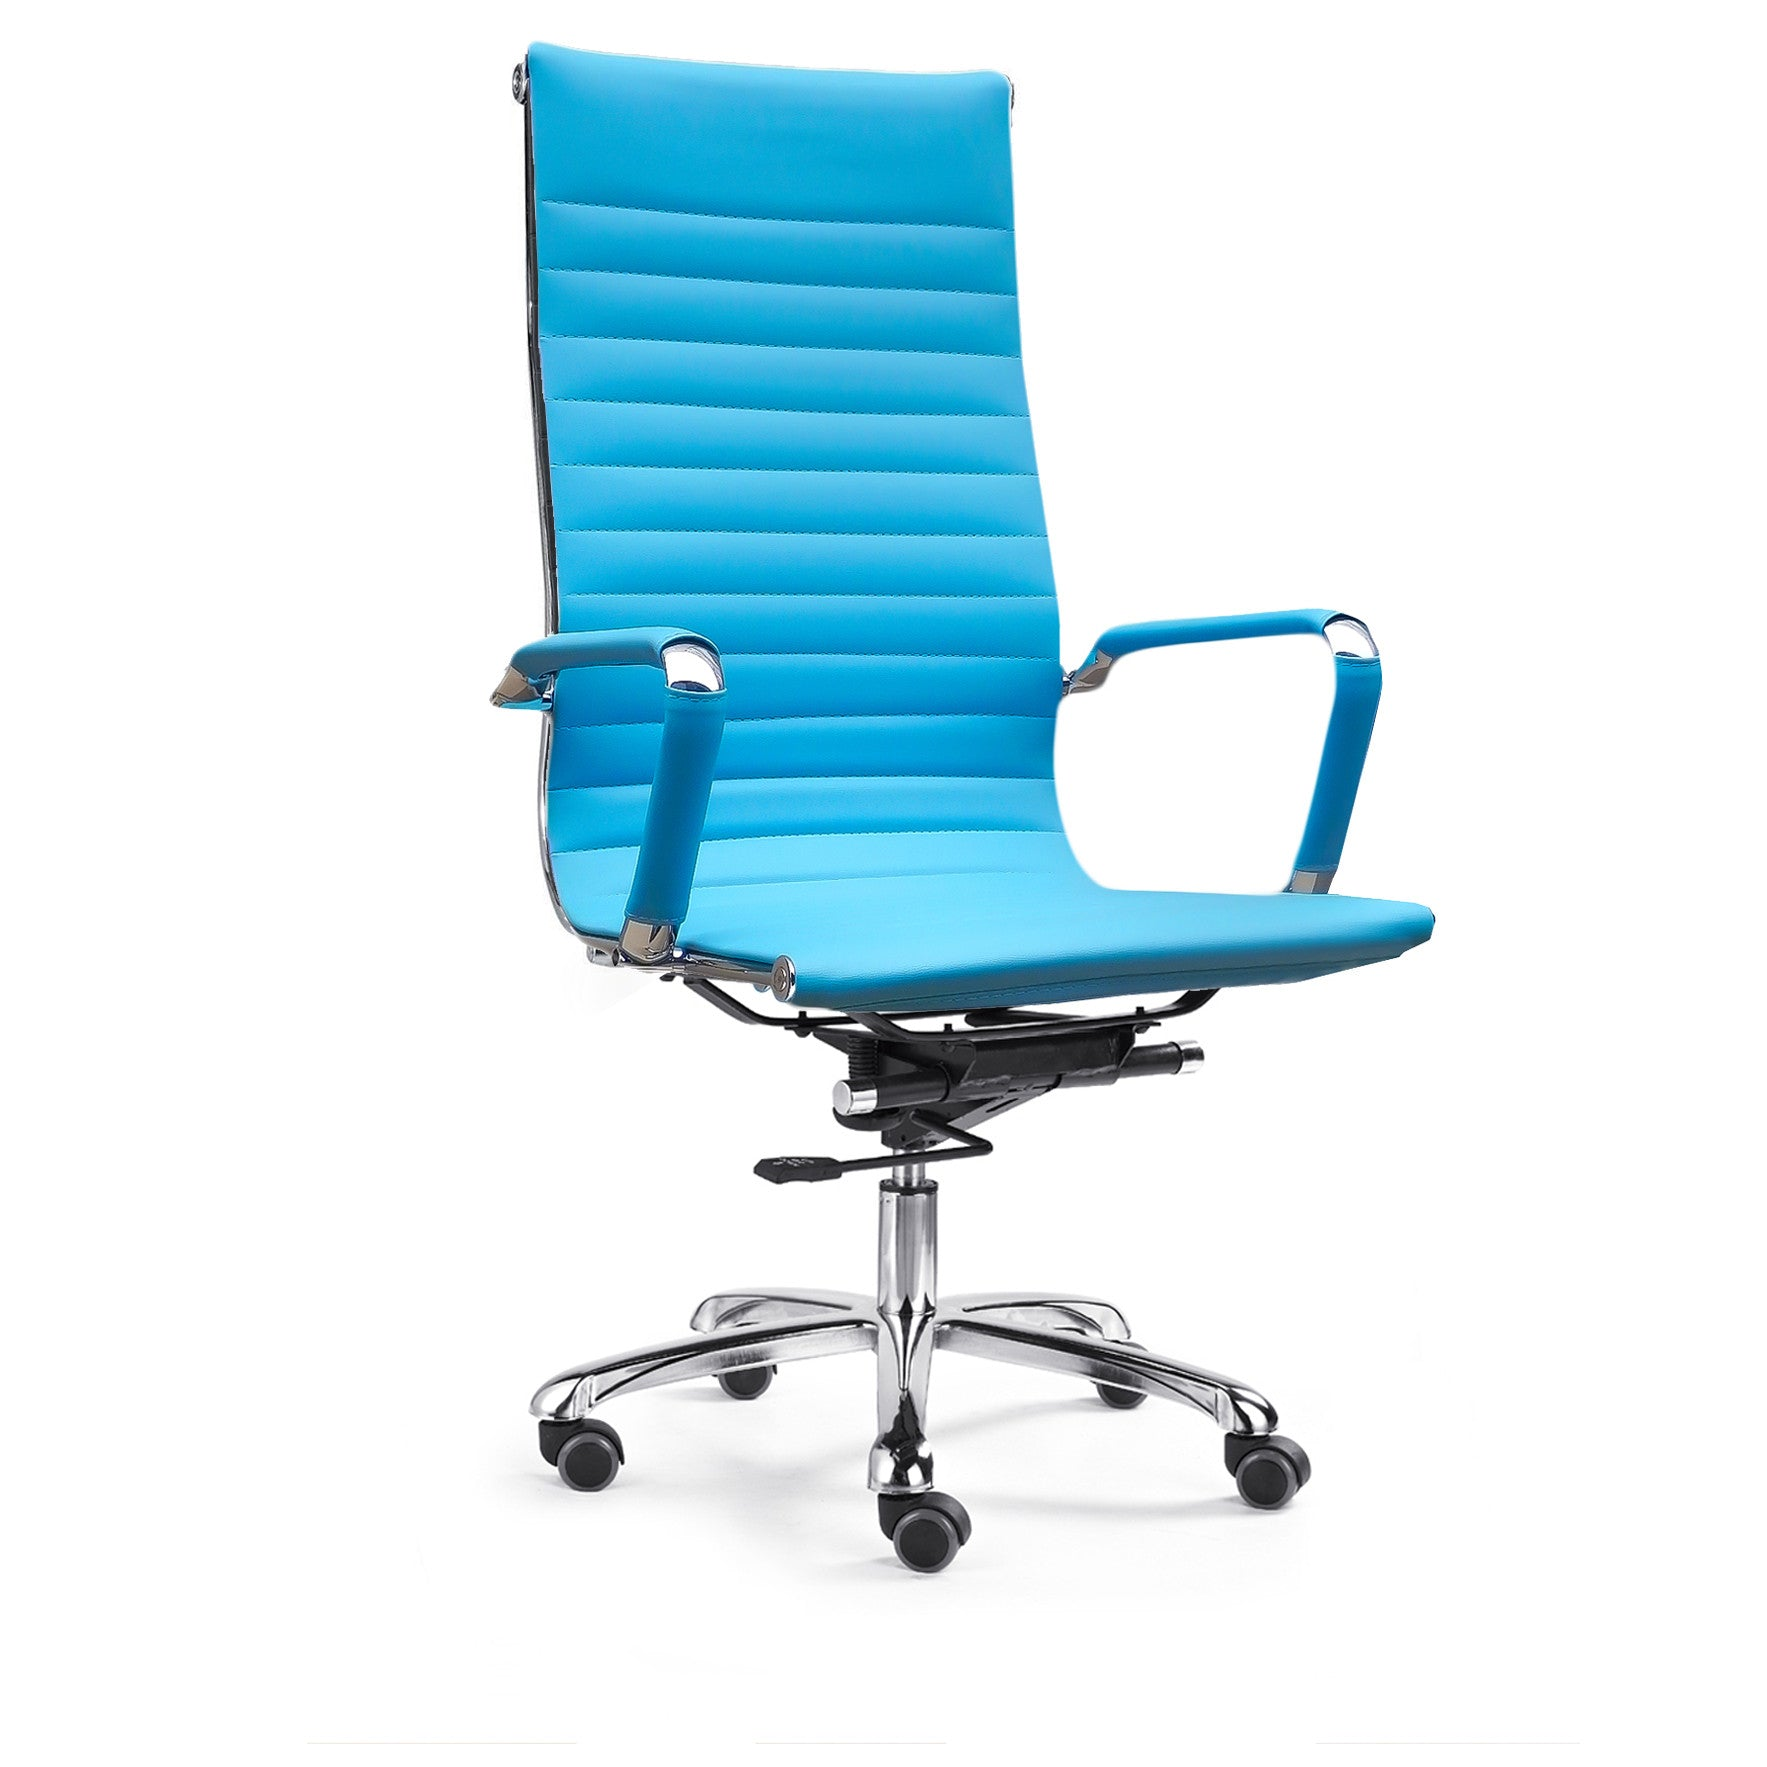 Beau Bikey Ultimate Collection, High Back Leather Executive Office Chair (Aqua)